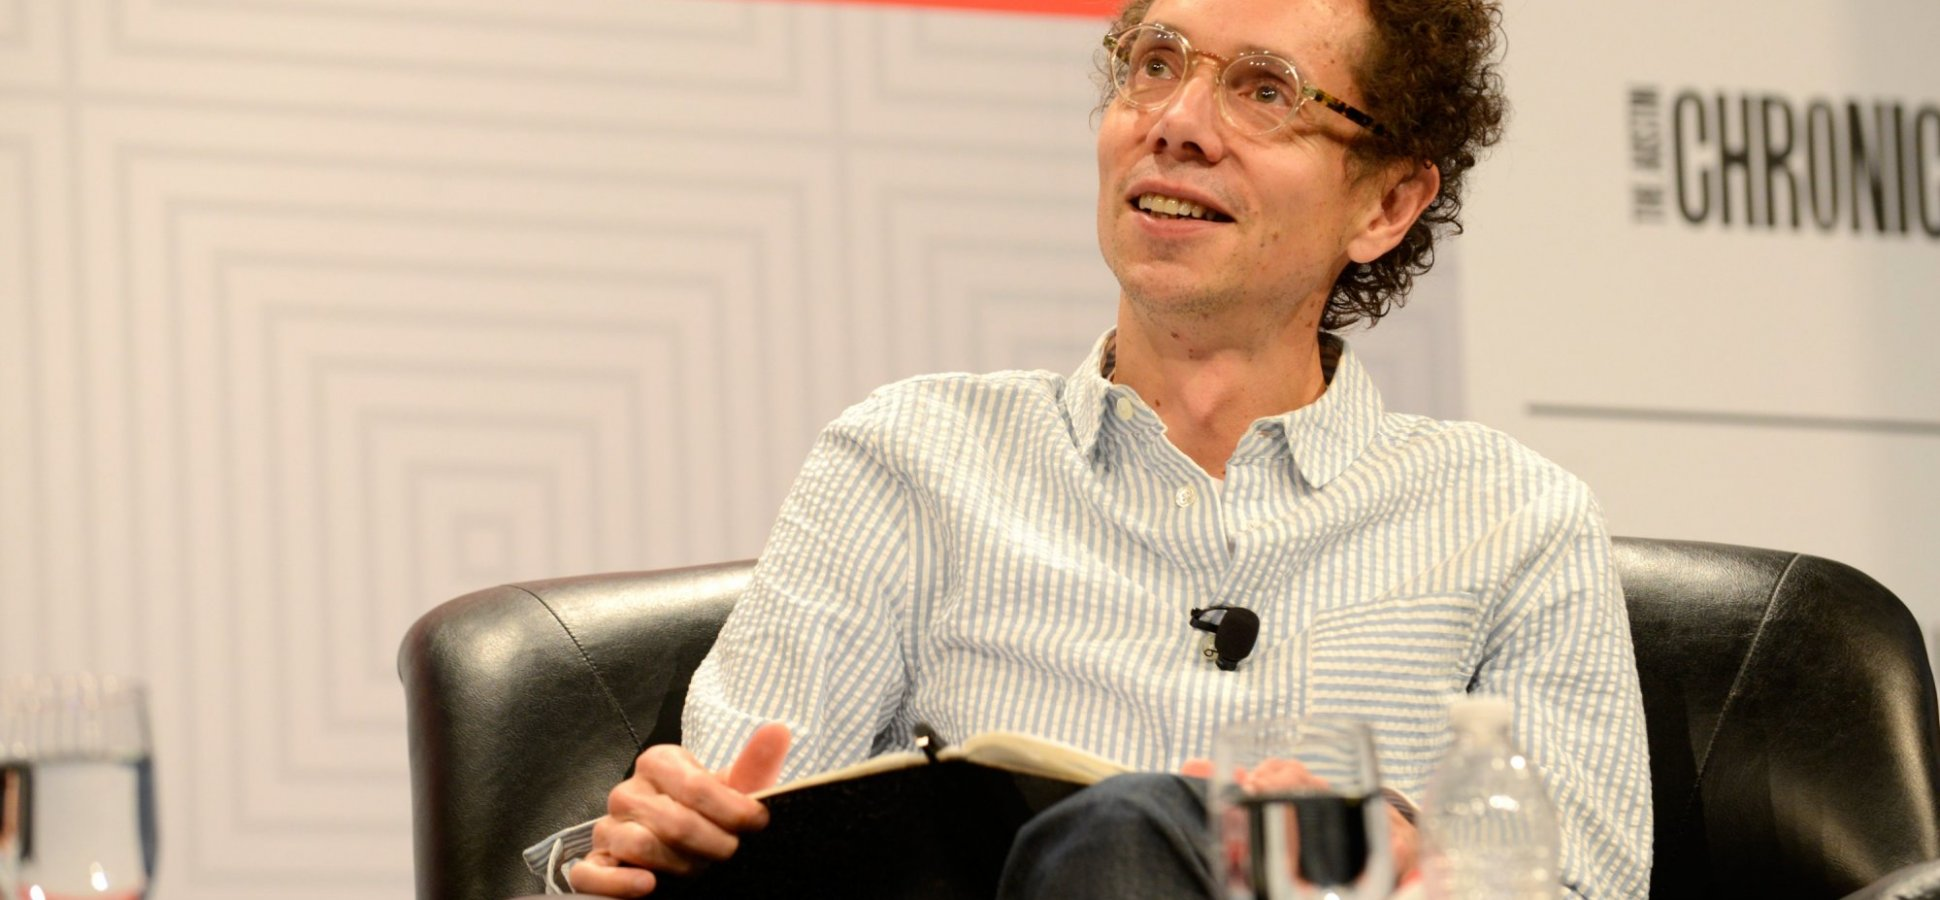 Why Malcolm Gladwell Tells Entrepreneurs to Stop Only Focusing on 1 Thing